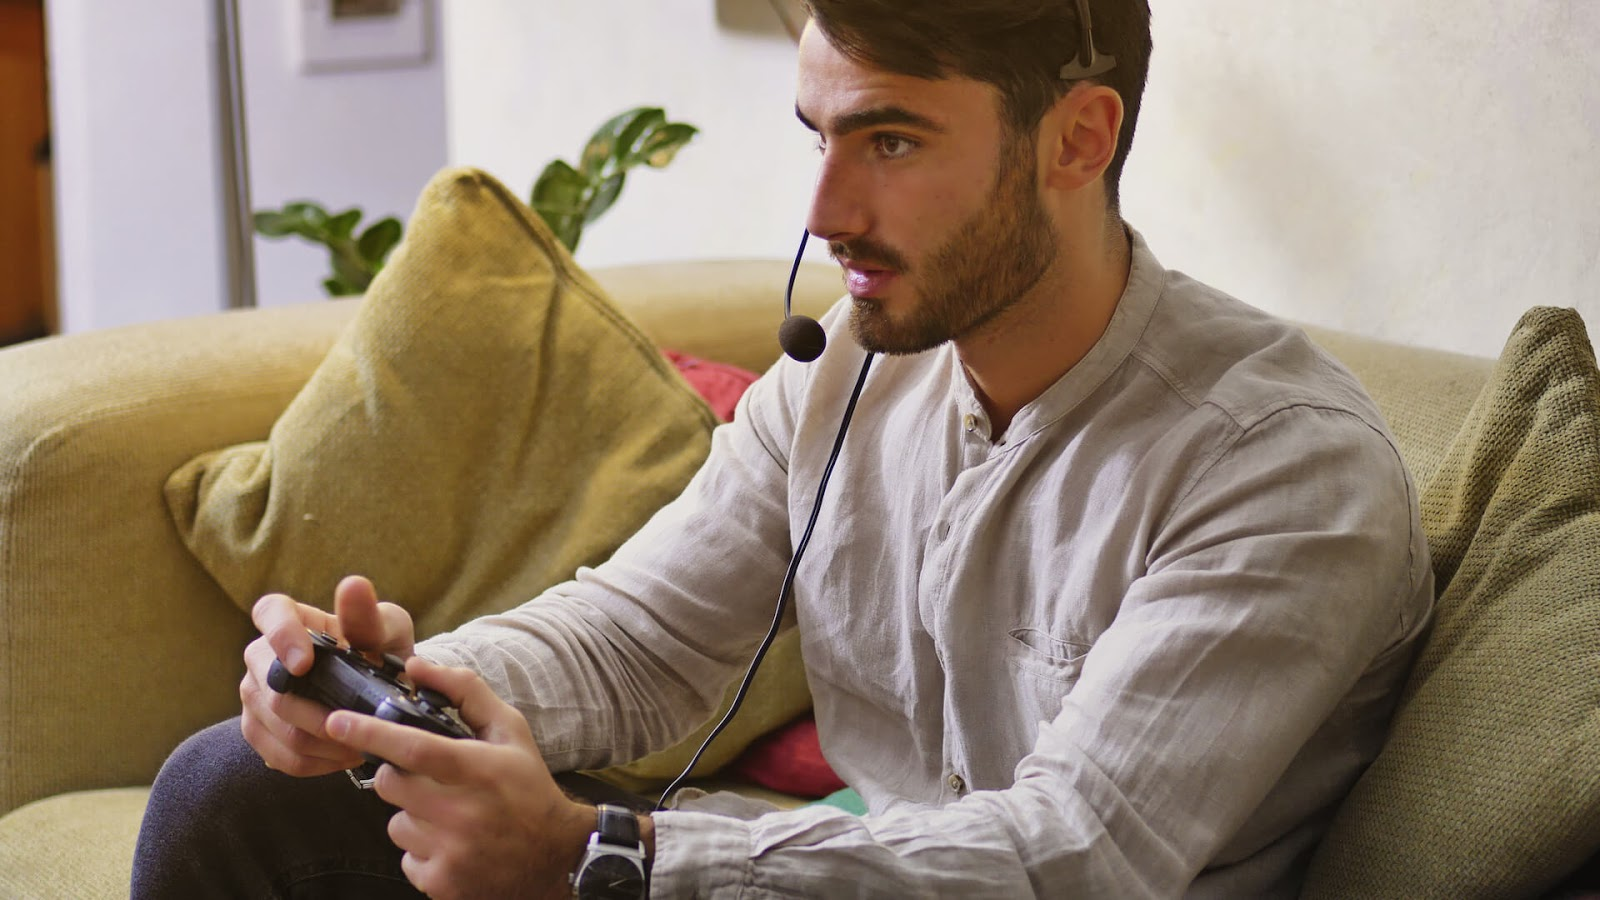 Man playing video game with headset on